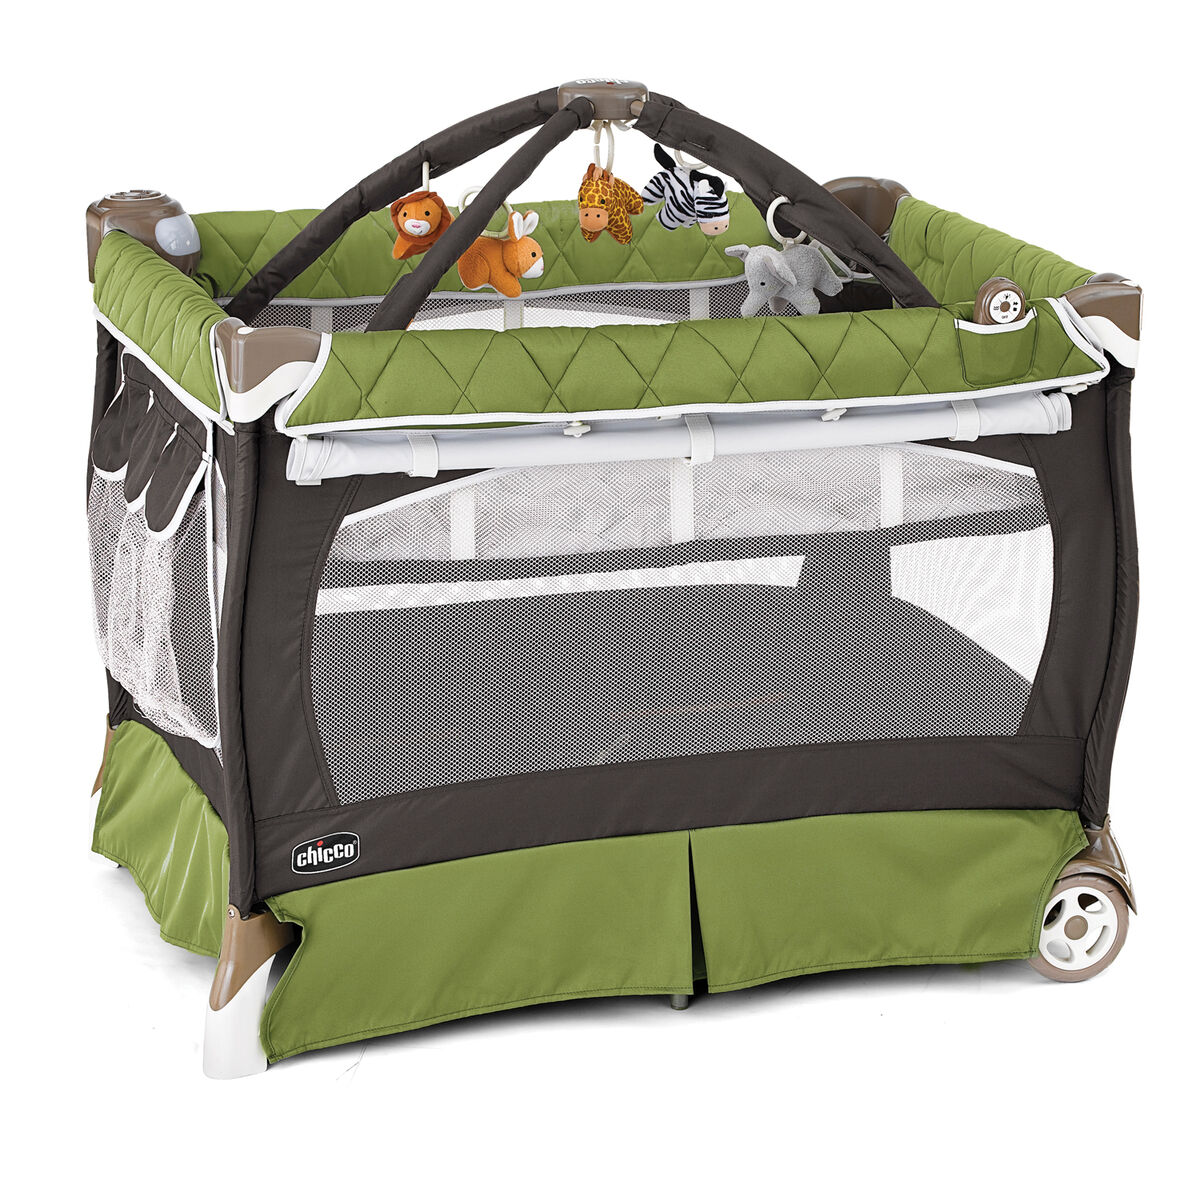 Chicco Chicco Lullaby Lx Playard Elm